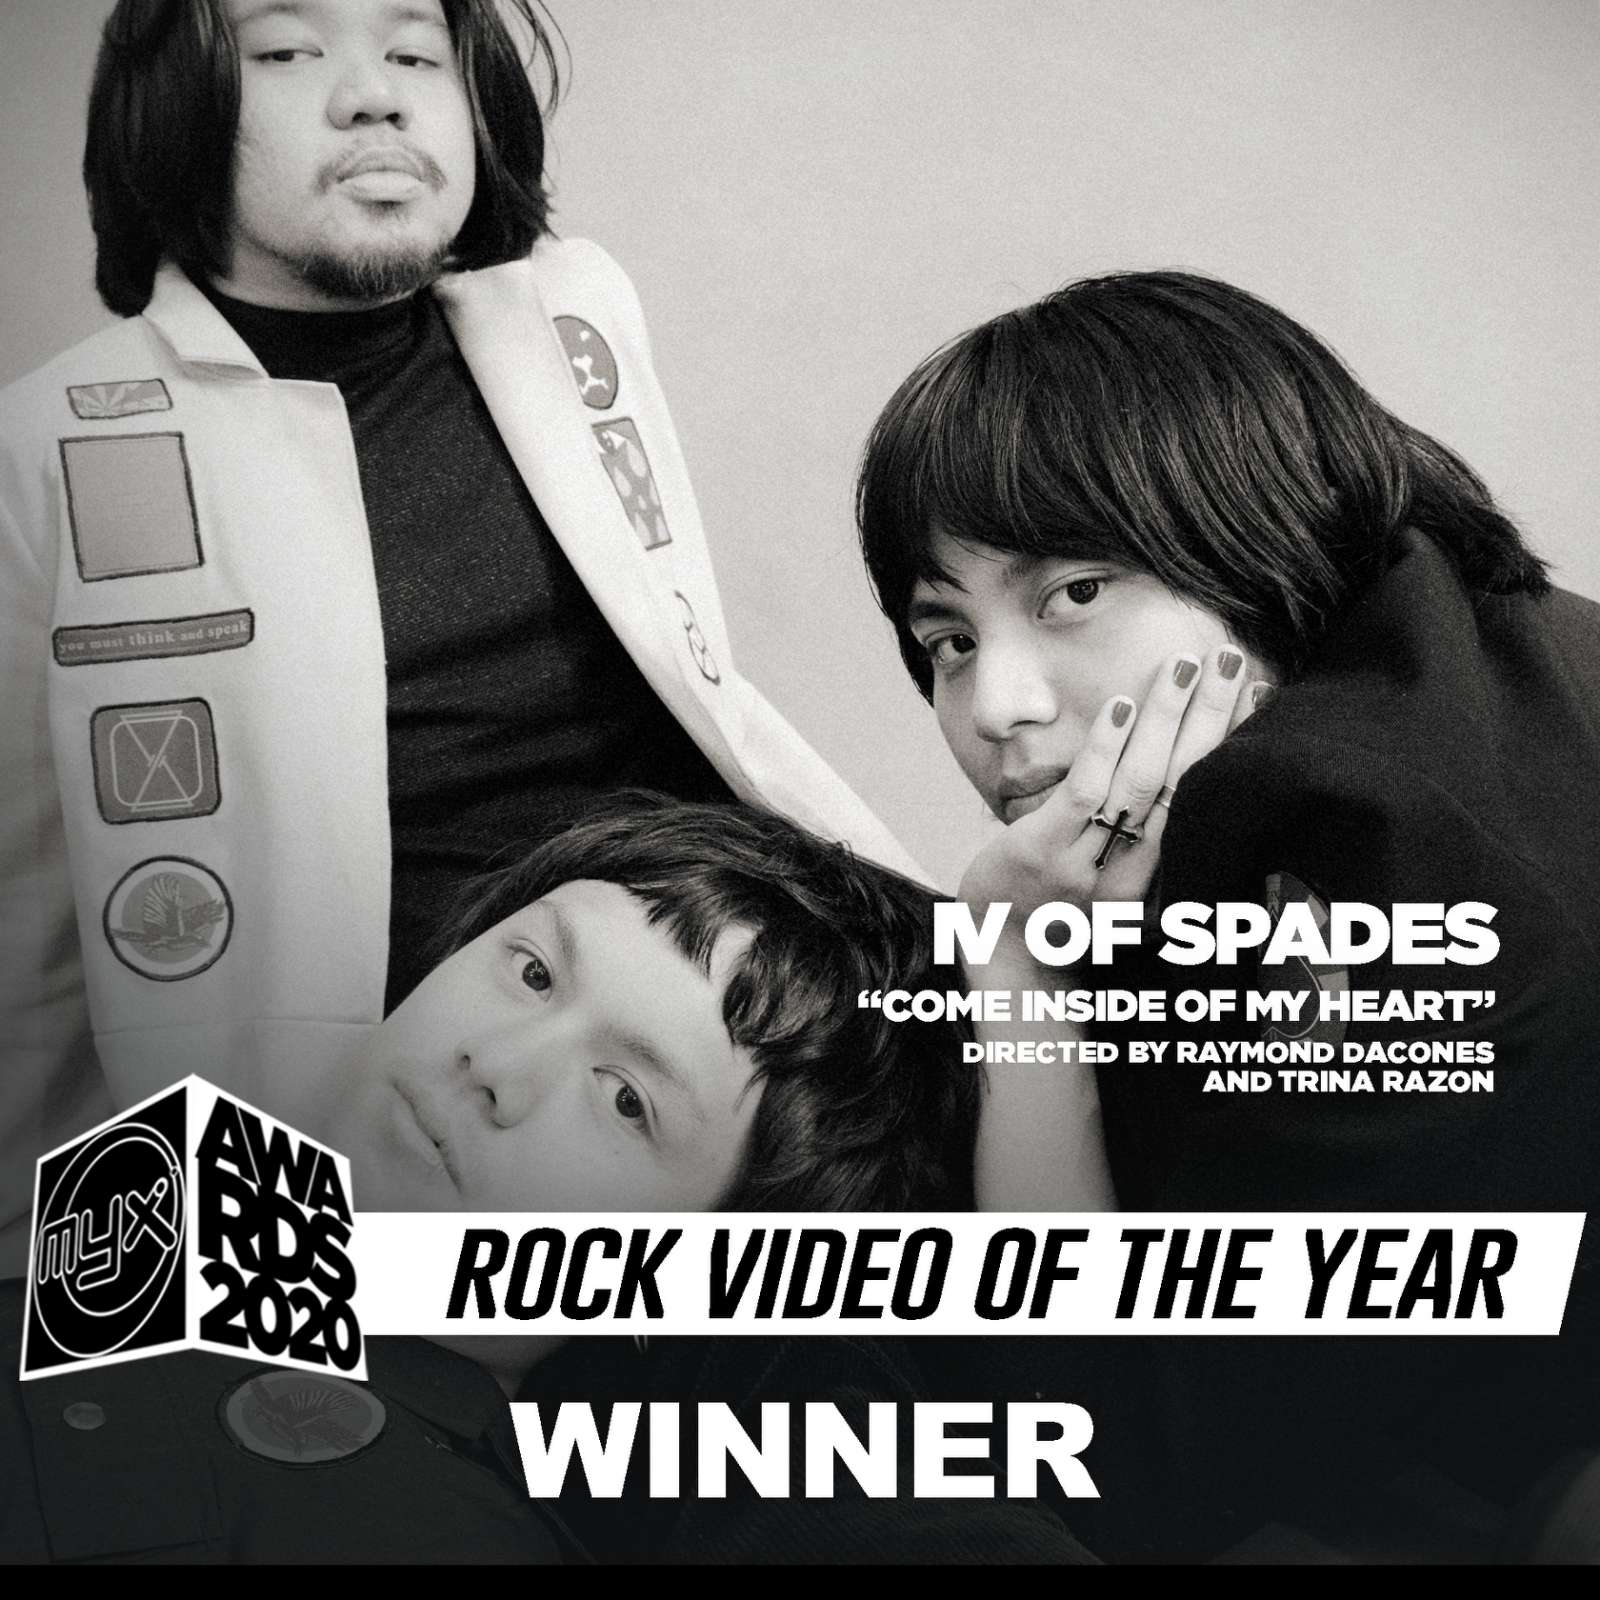 Come Inside of My Heart by IV of Spades is Rock Video of the Year